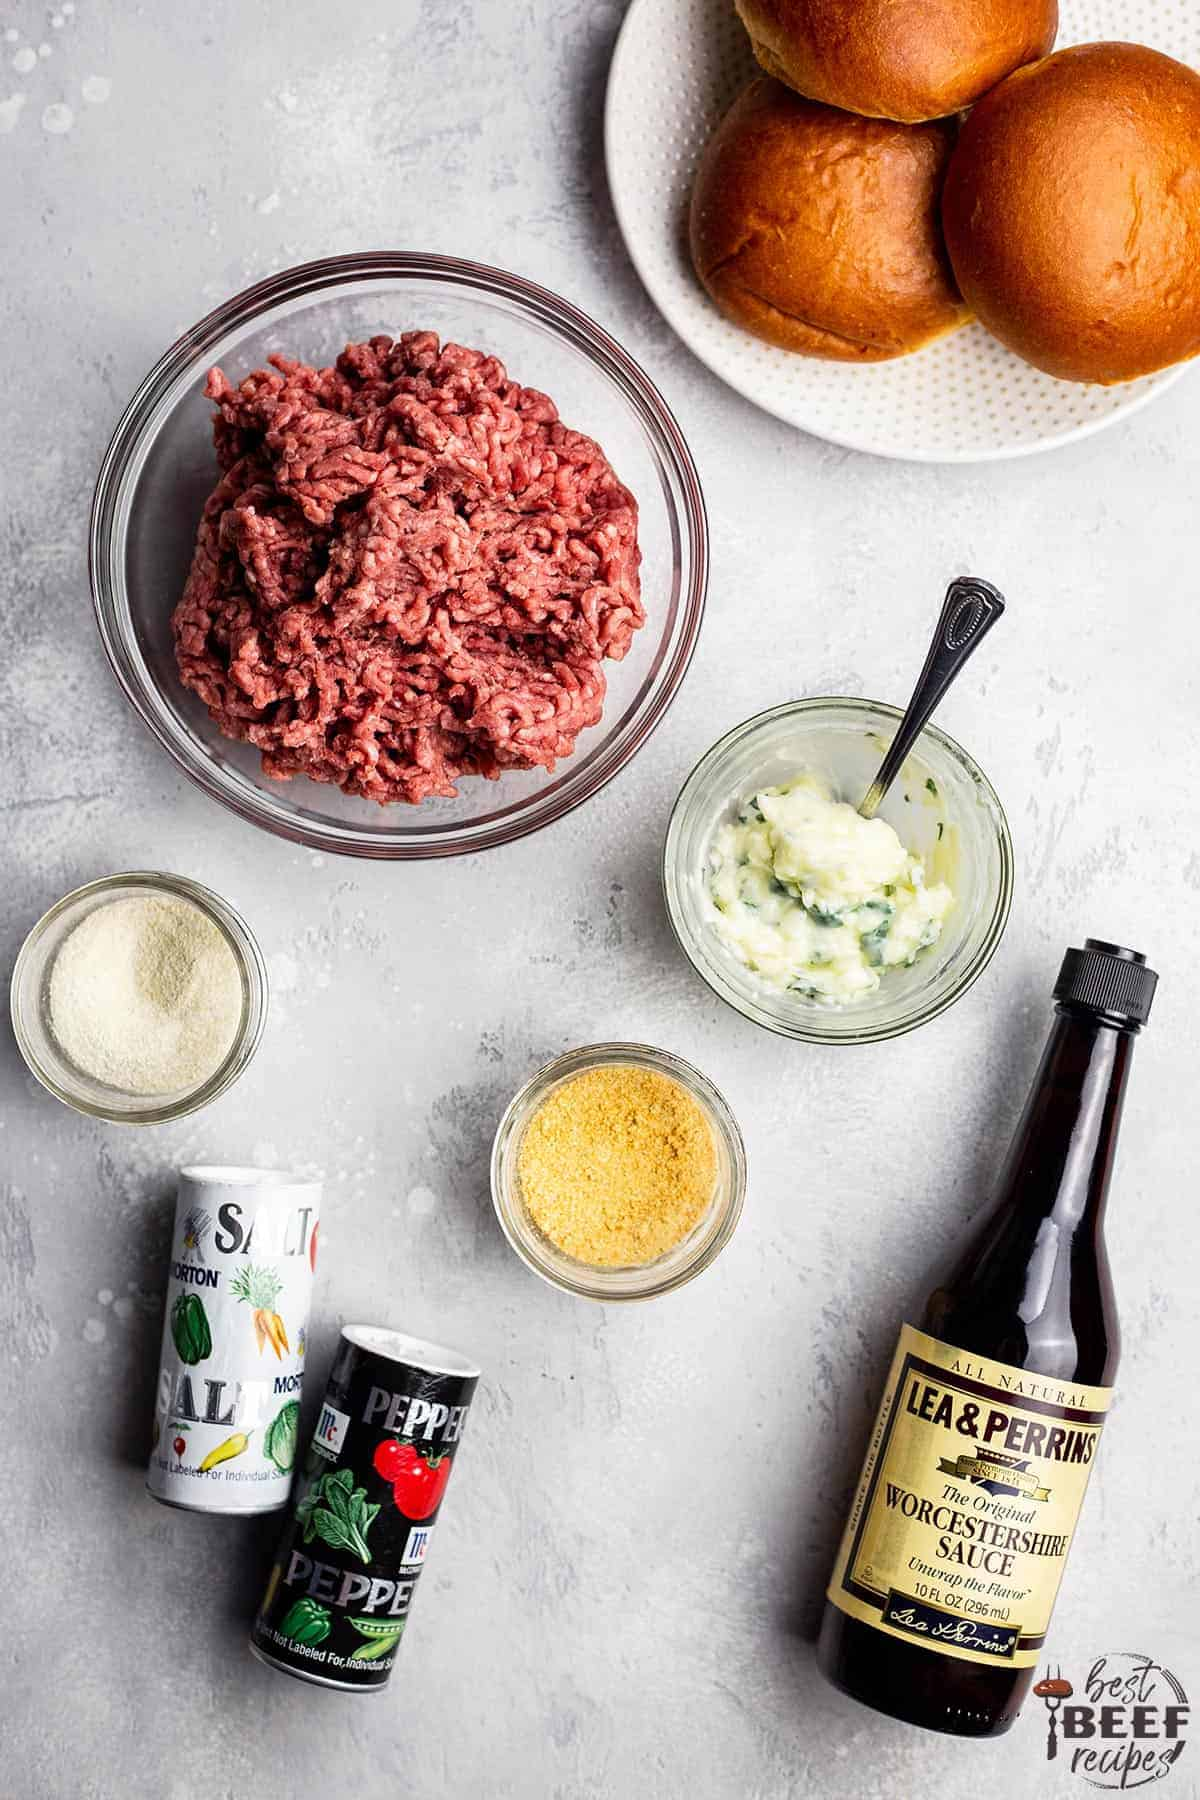 Ingredients to make air fryer burger recipe laid out on a white surface, including ground beef, garlic butter spread, burger seasonings, buns, and a bottle of Worcestershire sauce